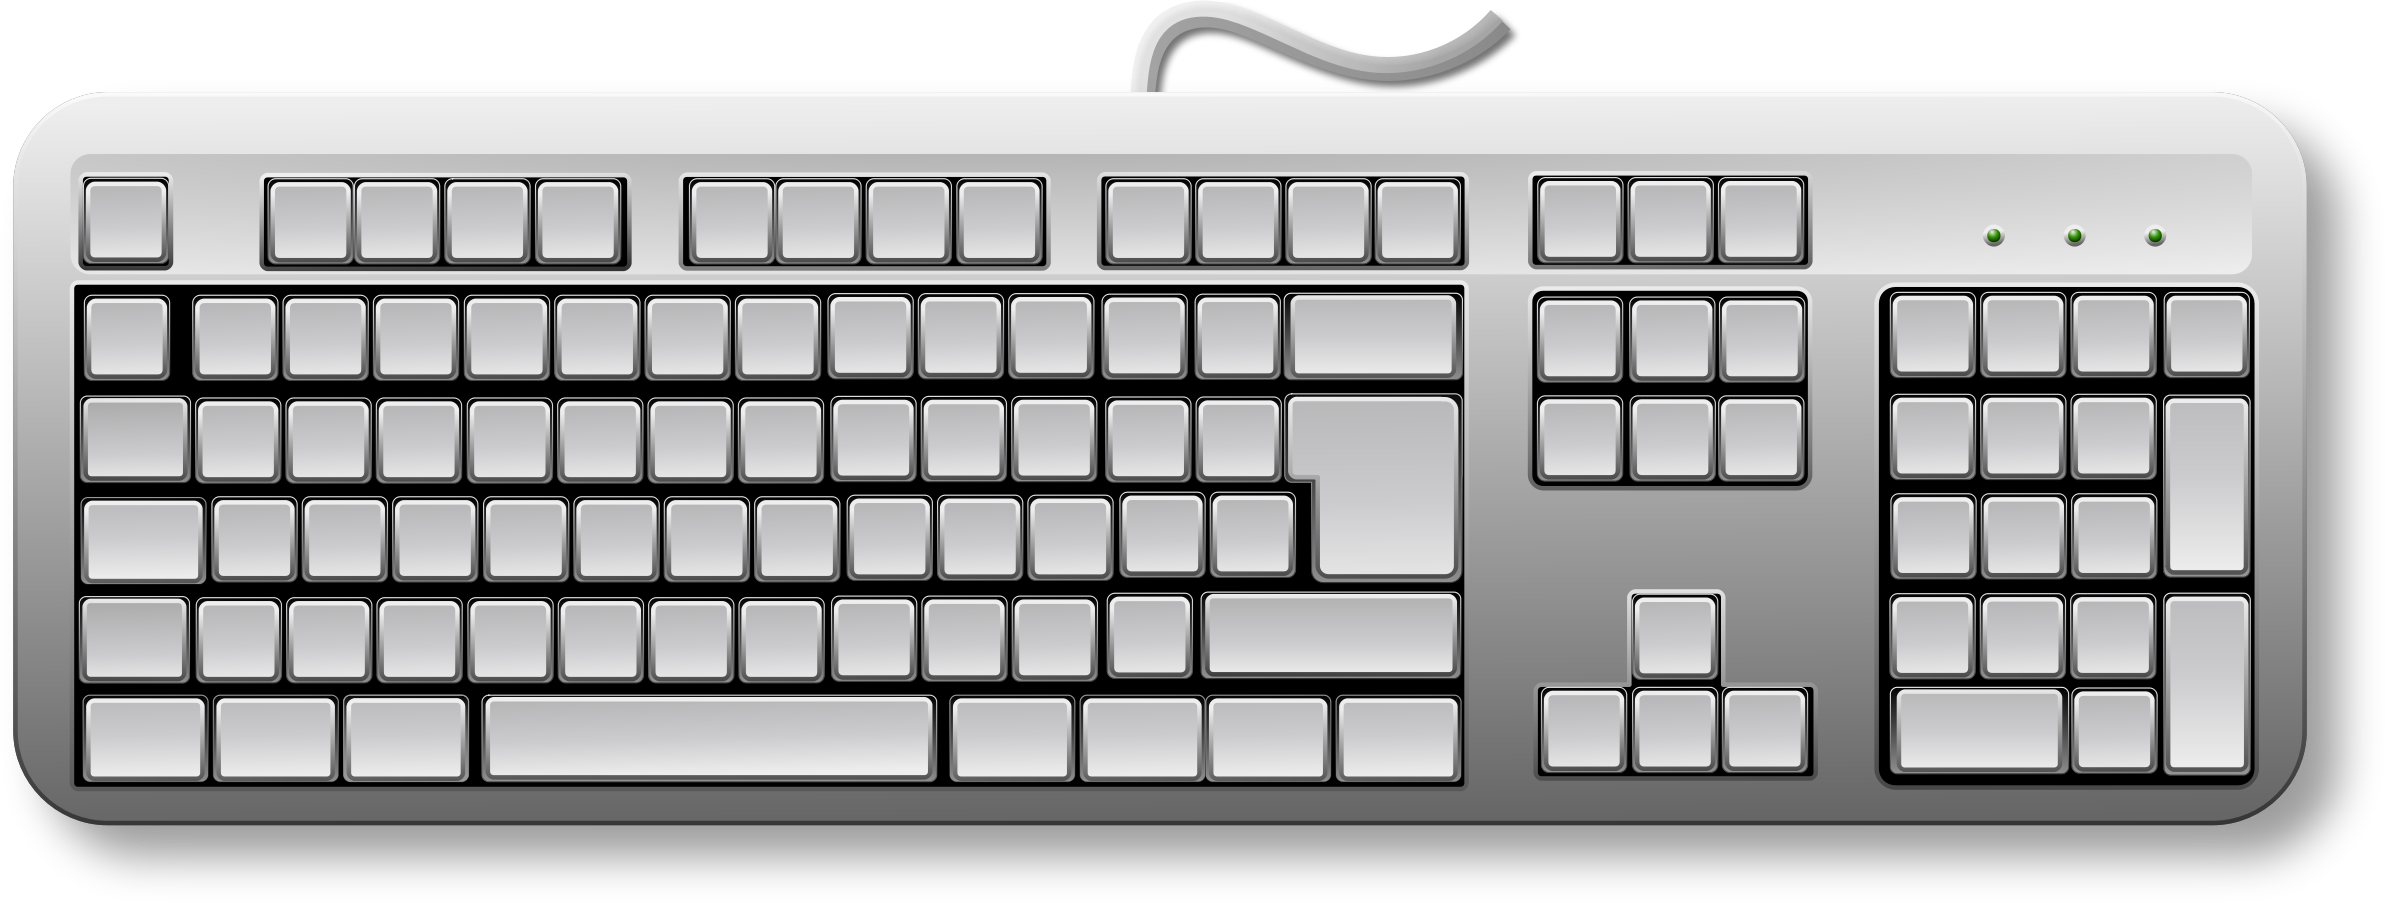 Blank Generic Keyboard by Merlin2525